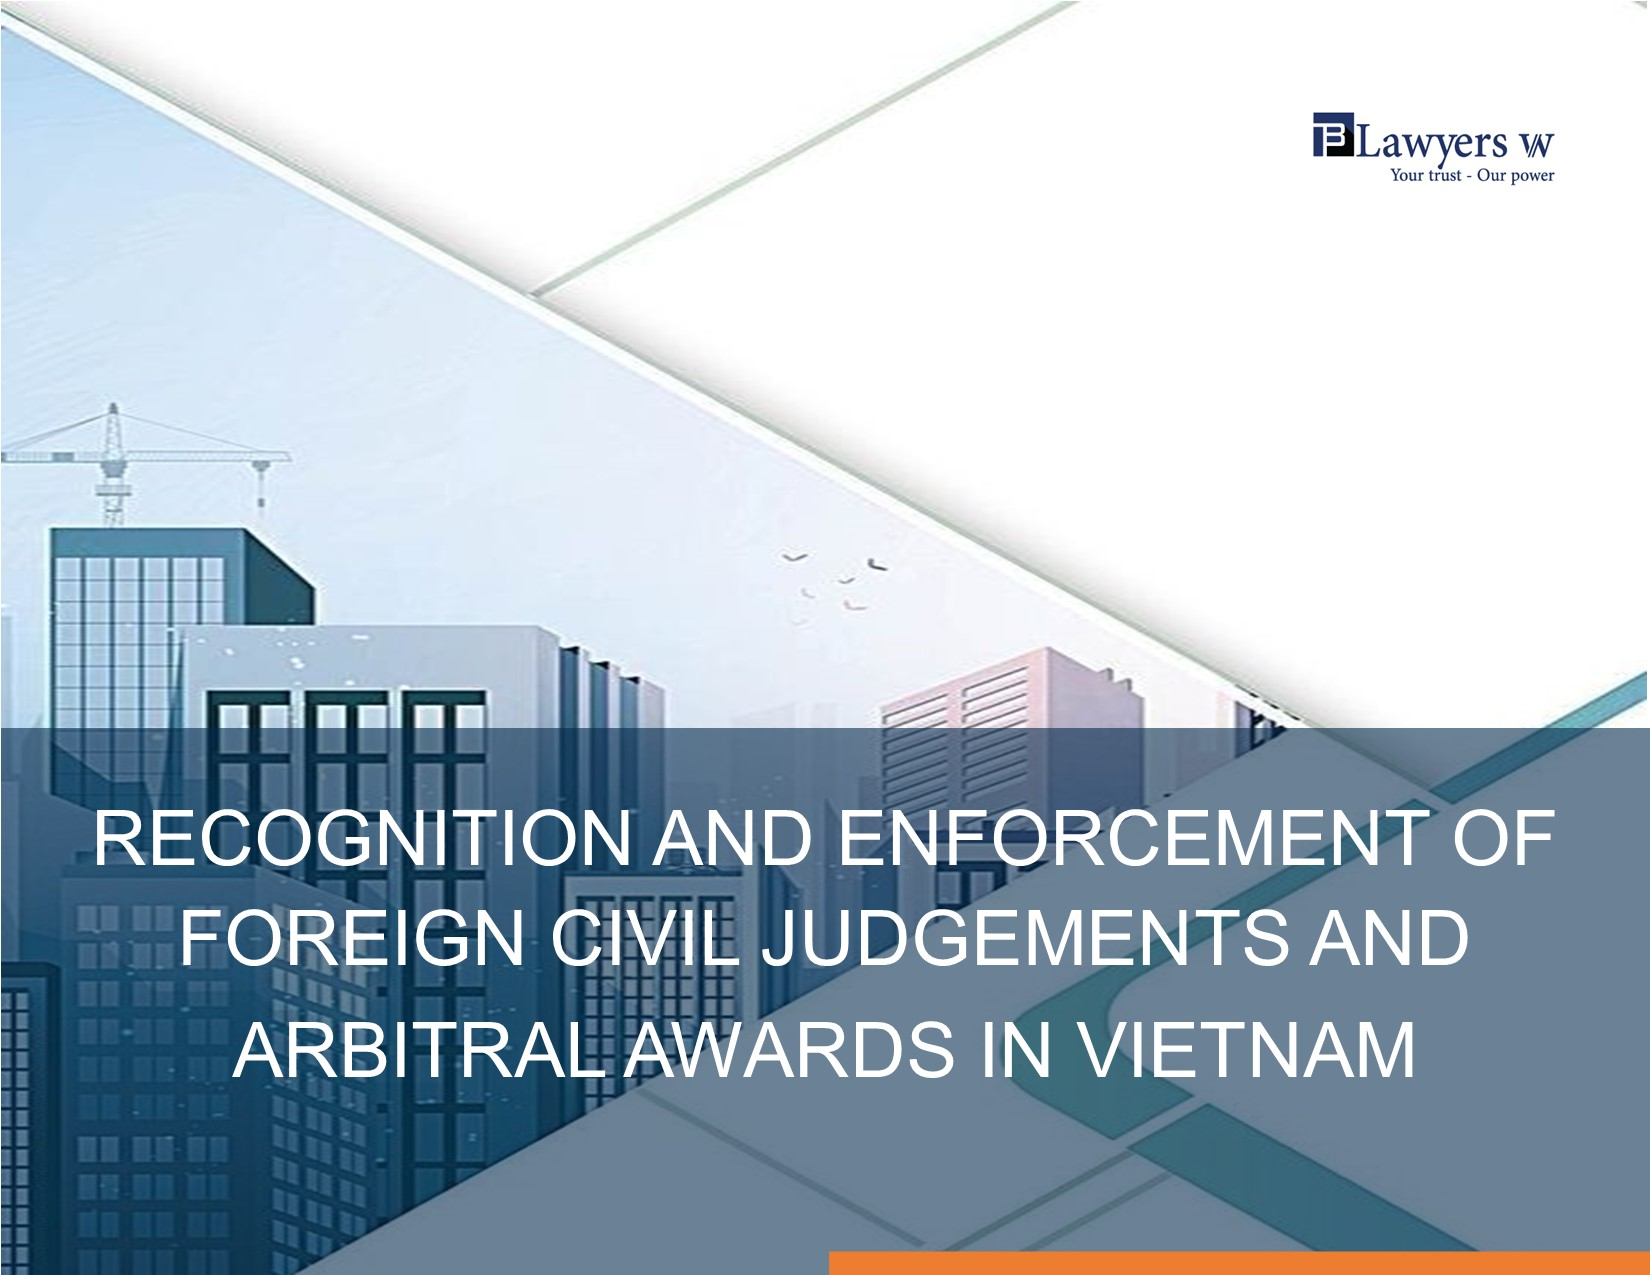 Recognition and enforcement of foreign civil judgements and arbitral awards in Vietnam